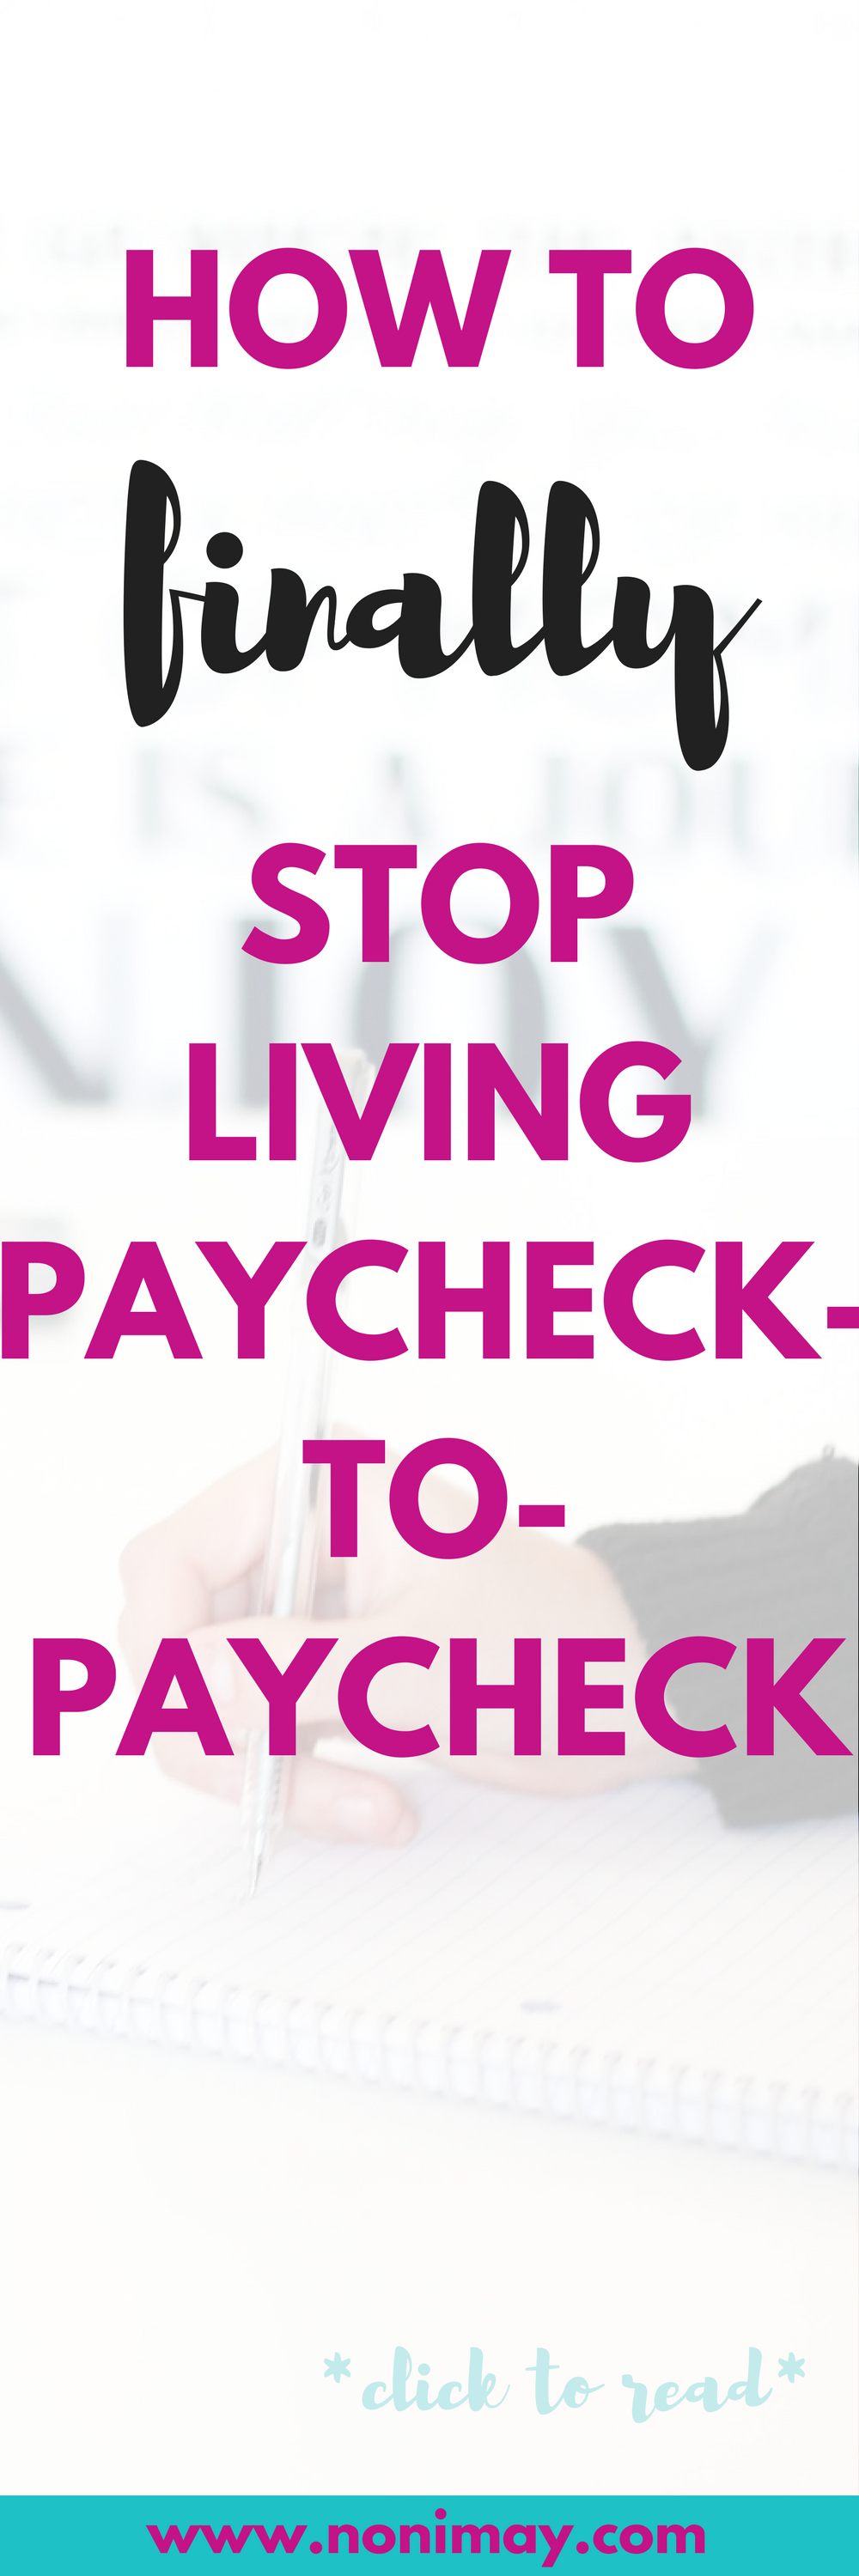 HOW TO FINALLY STOP LIVING PAYCHECK-TO-PAYCHECK